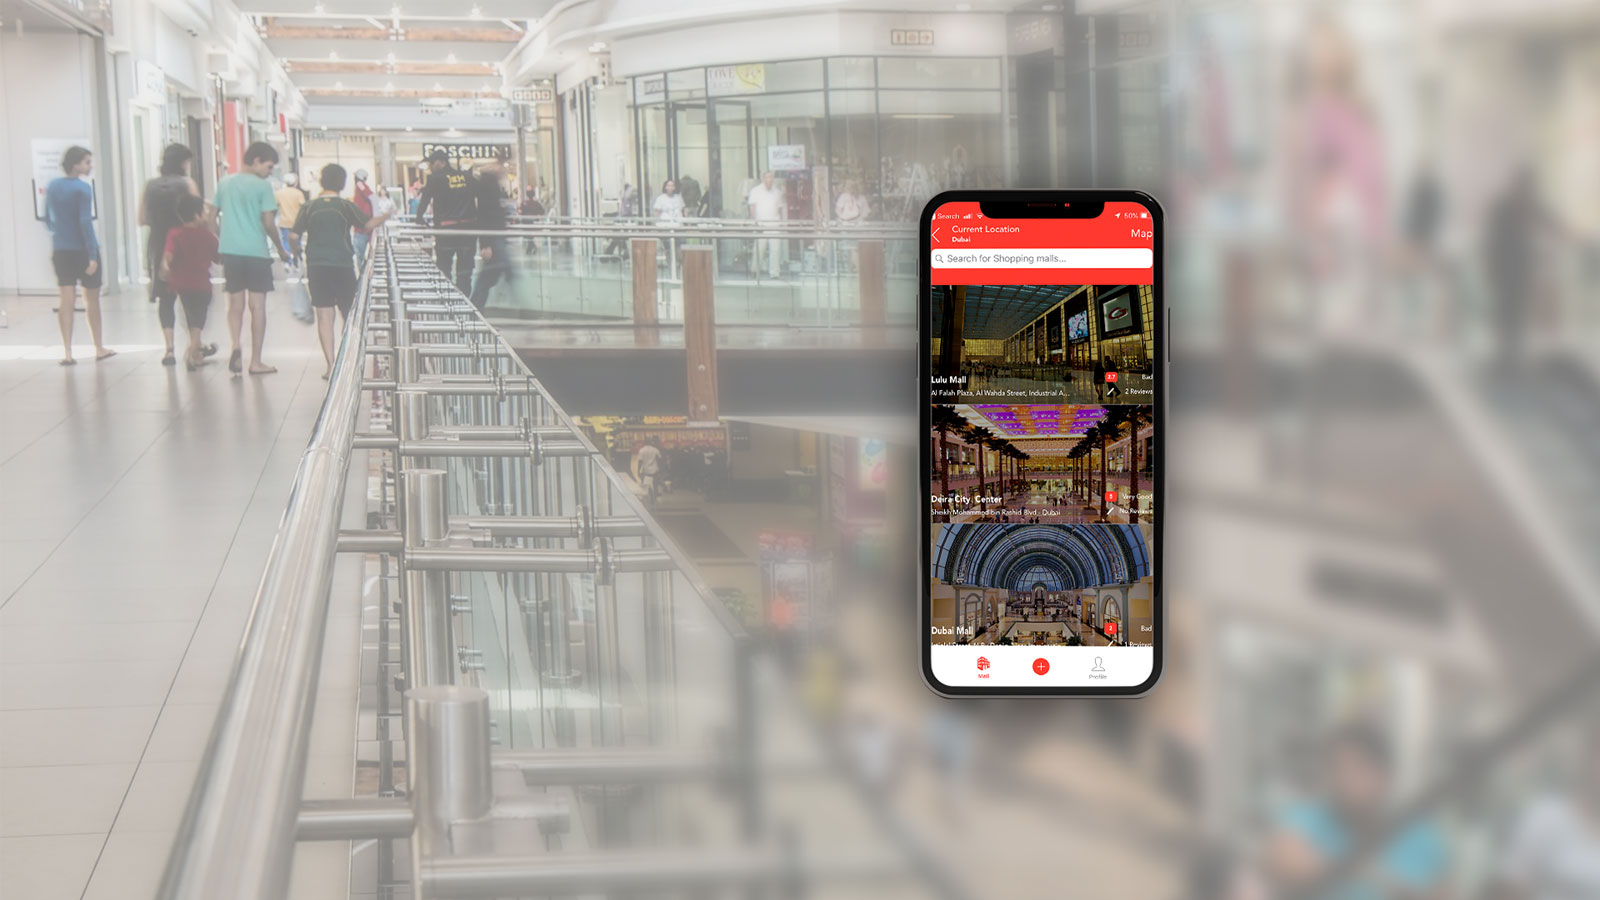 A mobile screen showing the image of GoShop app